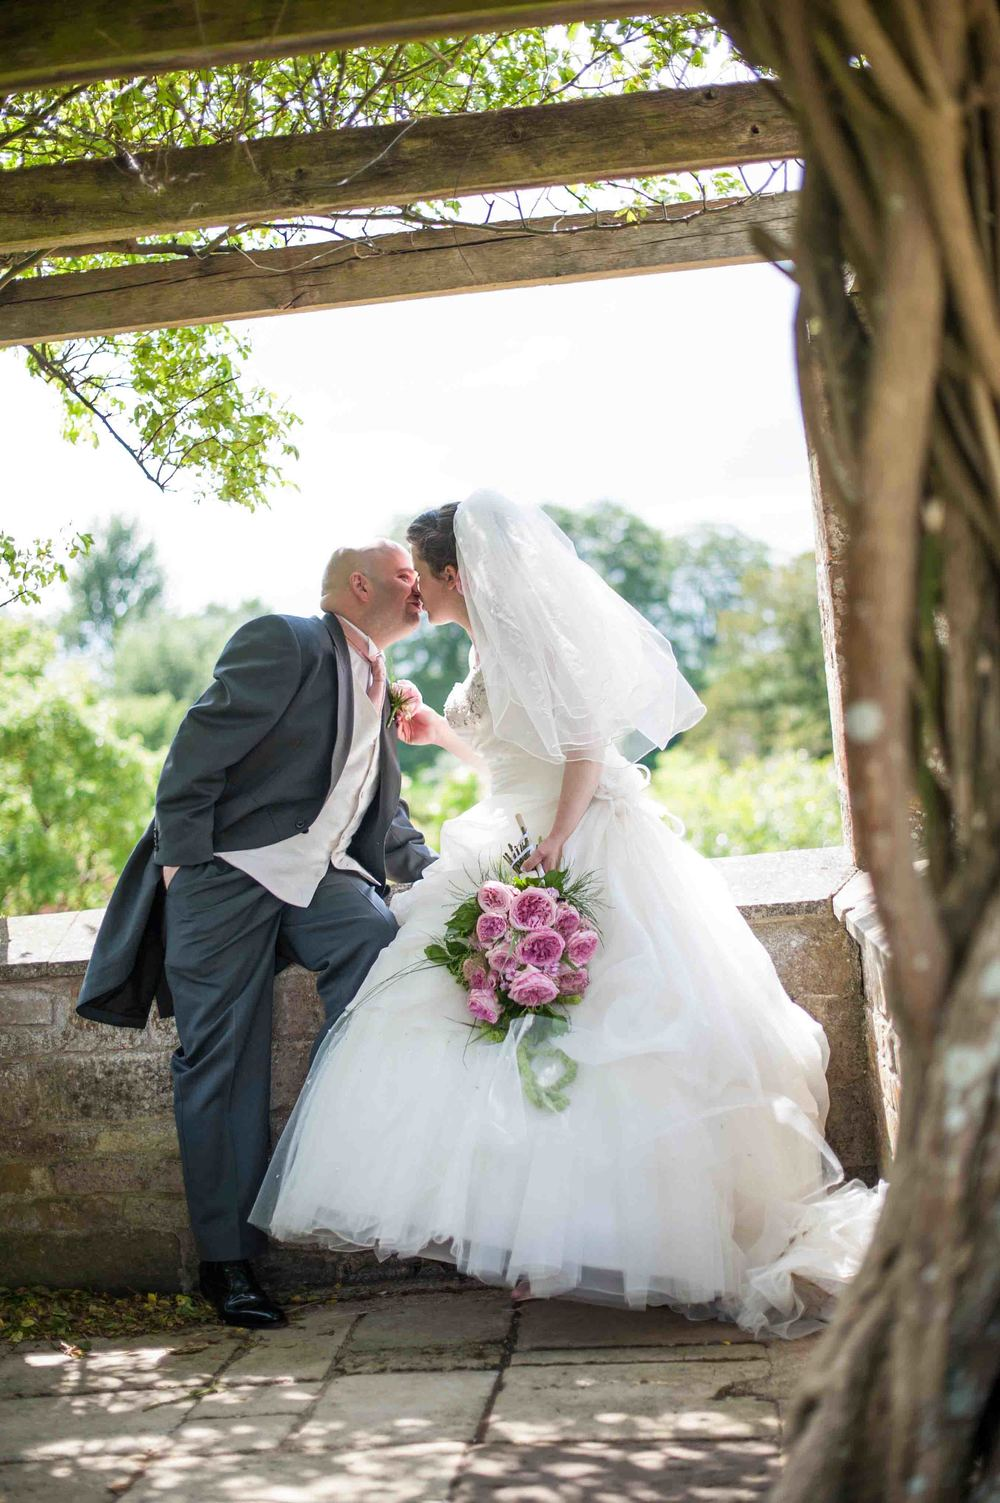 Read more about Kate & Mark's 'Queen of the Castle' Wedding